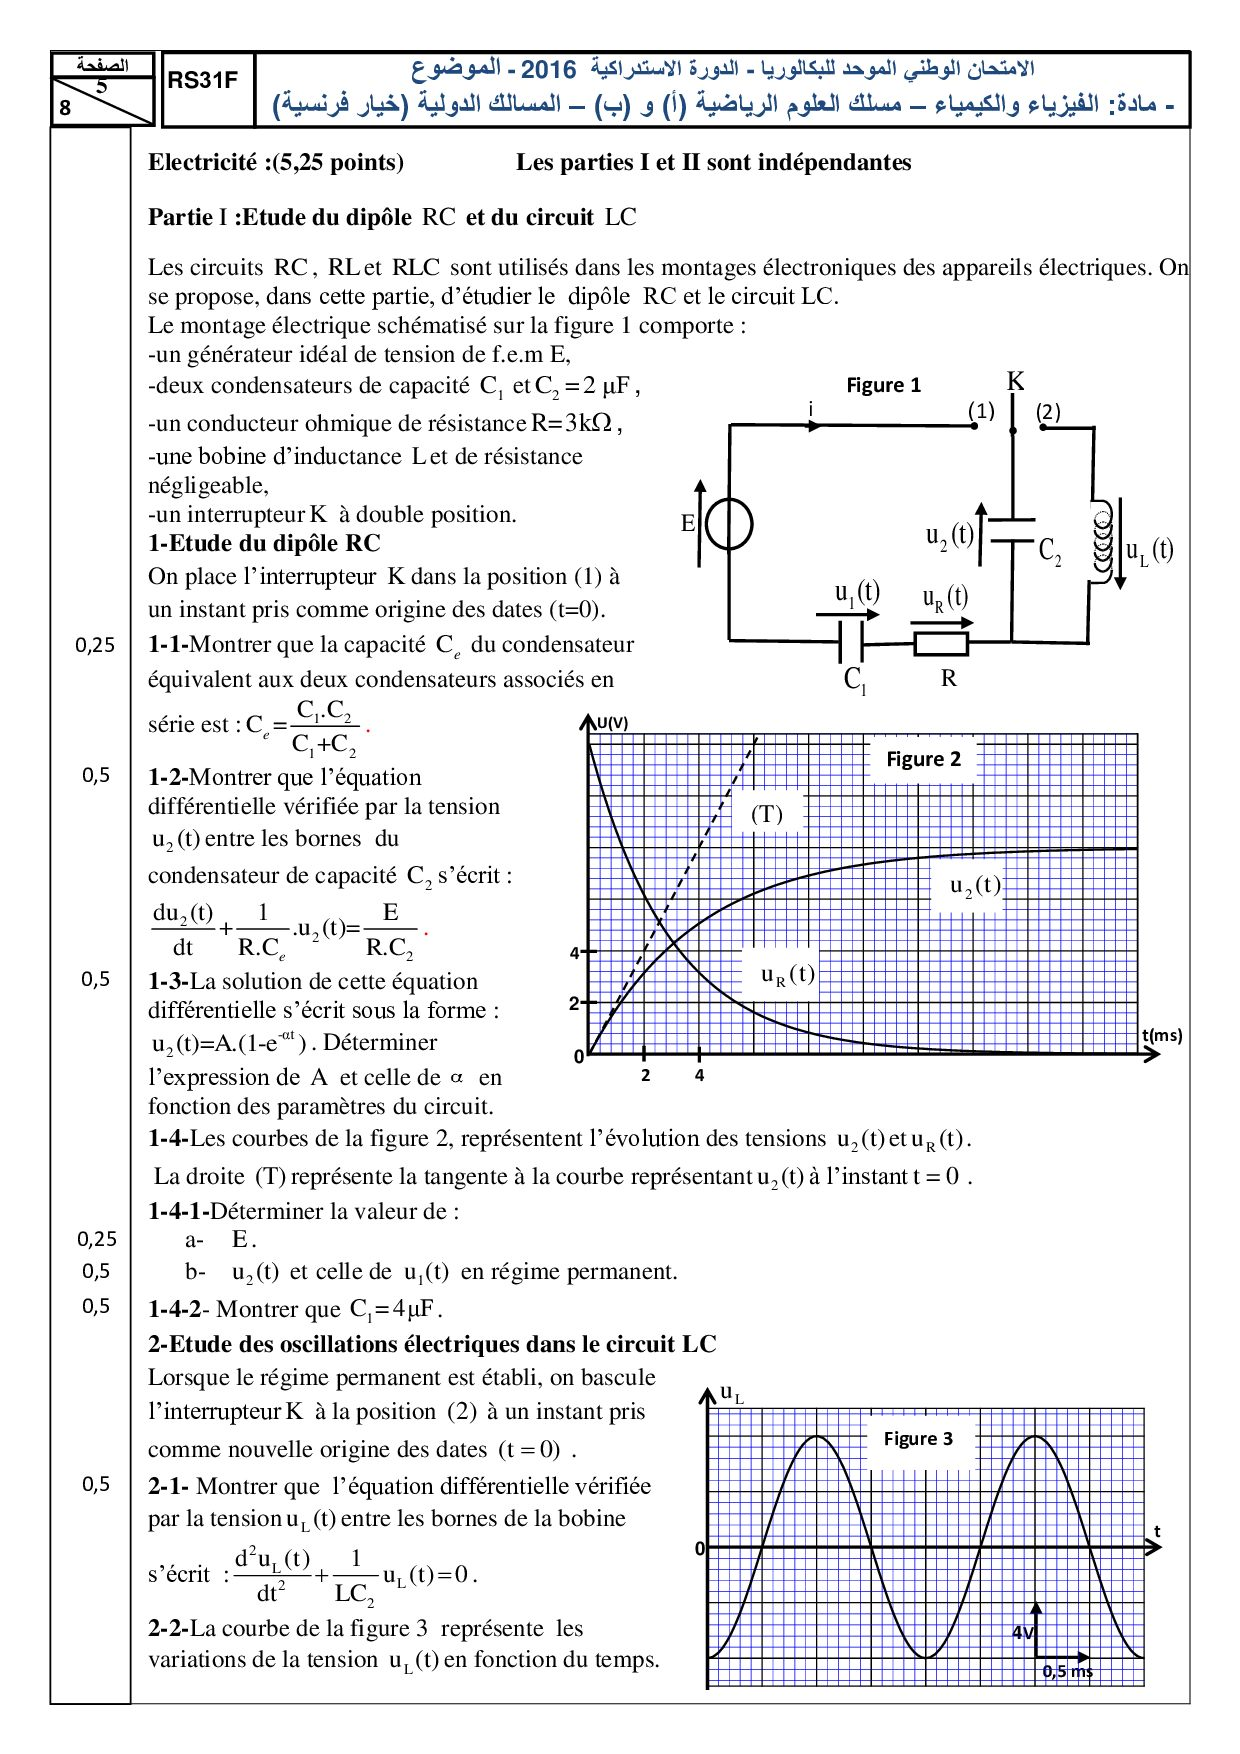 Examen National Physique-Chimie Sciences Maths 2016 Rattrapage - Sujet5.jpg